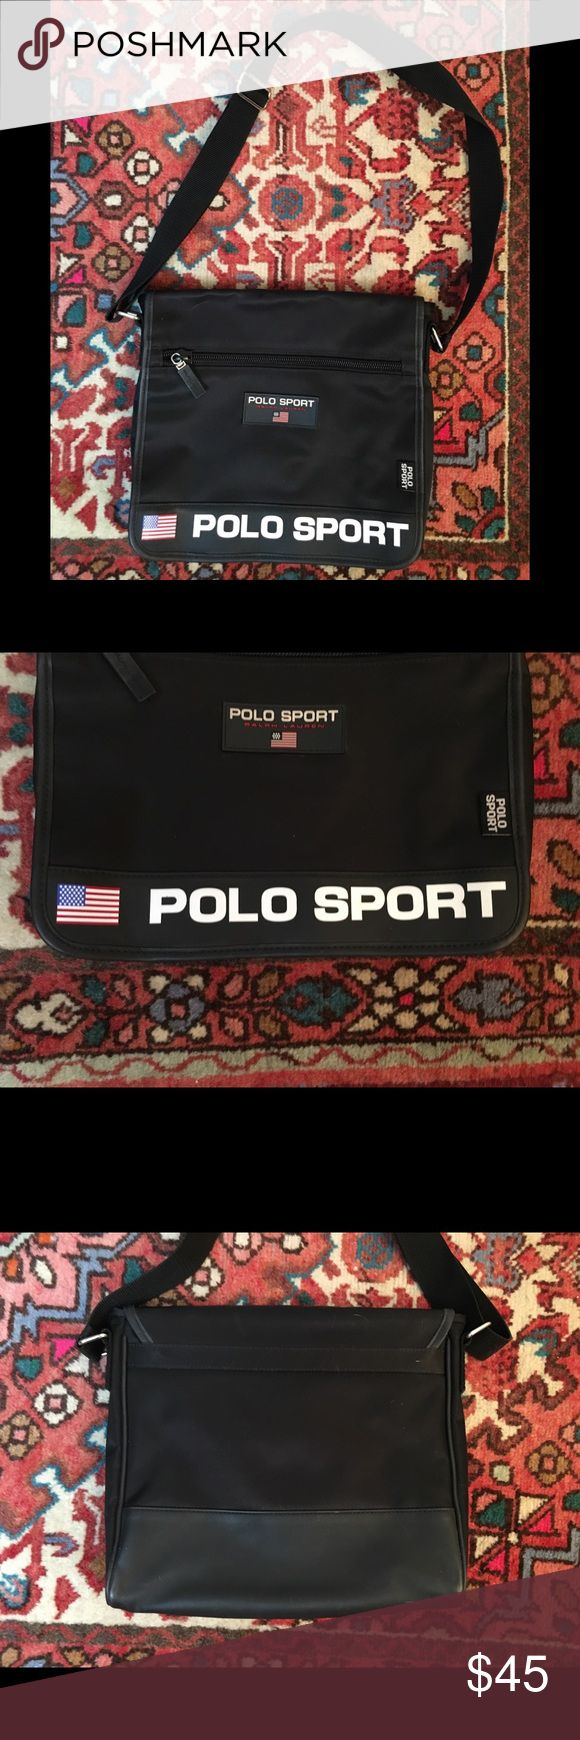 """90s Polo Sport Black Crossbody Messenger Bag Vtg 90s Polo Sport Ralph Lauren Spell Out Black Crossbody Messenger Laptop Bag  Thick black nylon. Tons of logo details. Strap drop at longest length is 20"""". Bag itself is 12x11 inches.  As previously stated, in excellent condition with a small white mark on inside flap.  Quick shipping! WE SHIP EITHER THE SAME BUSINESS DAY OR NEXT. ORDERS ON WEEKENDS ARE IN MAIL BY MONDAY MORNING. Polo by Ralph Lauren Bags"""